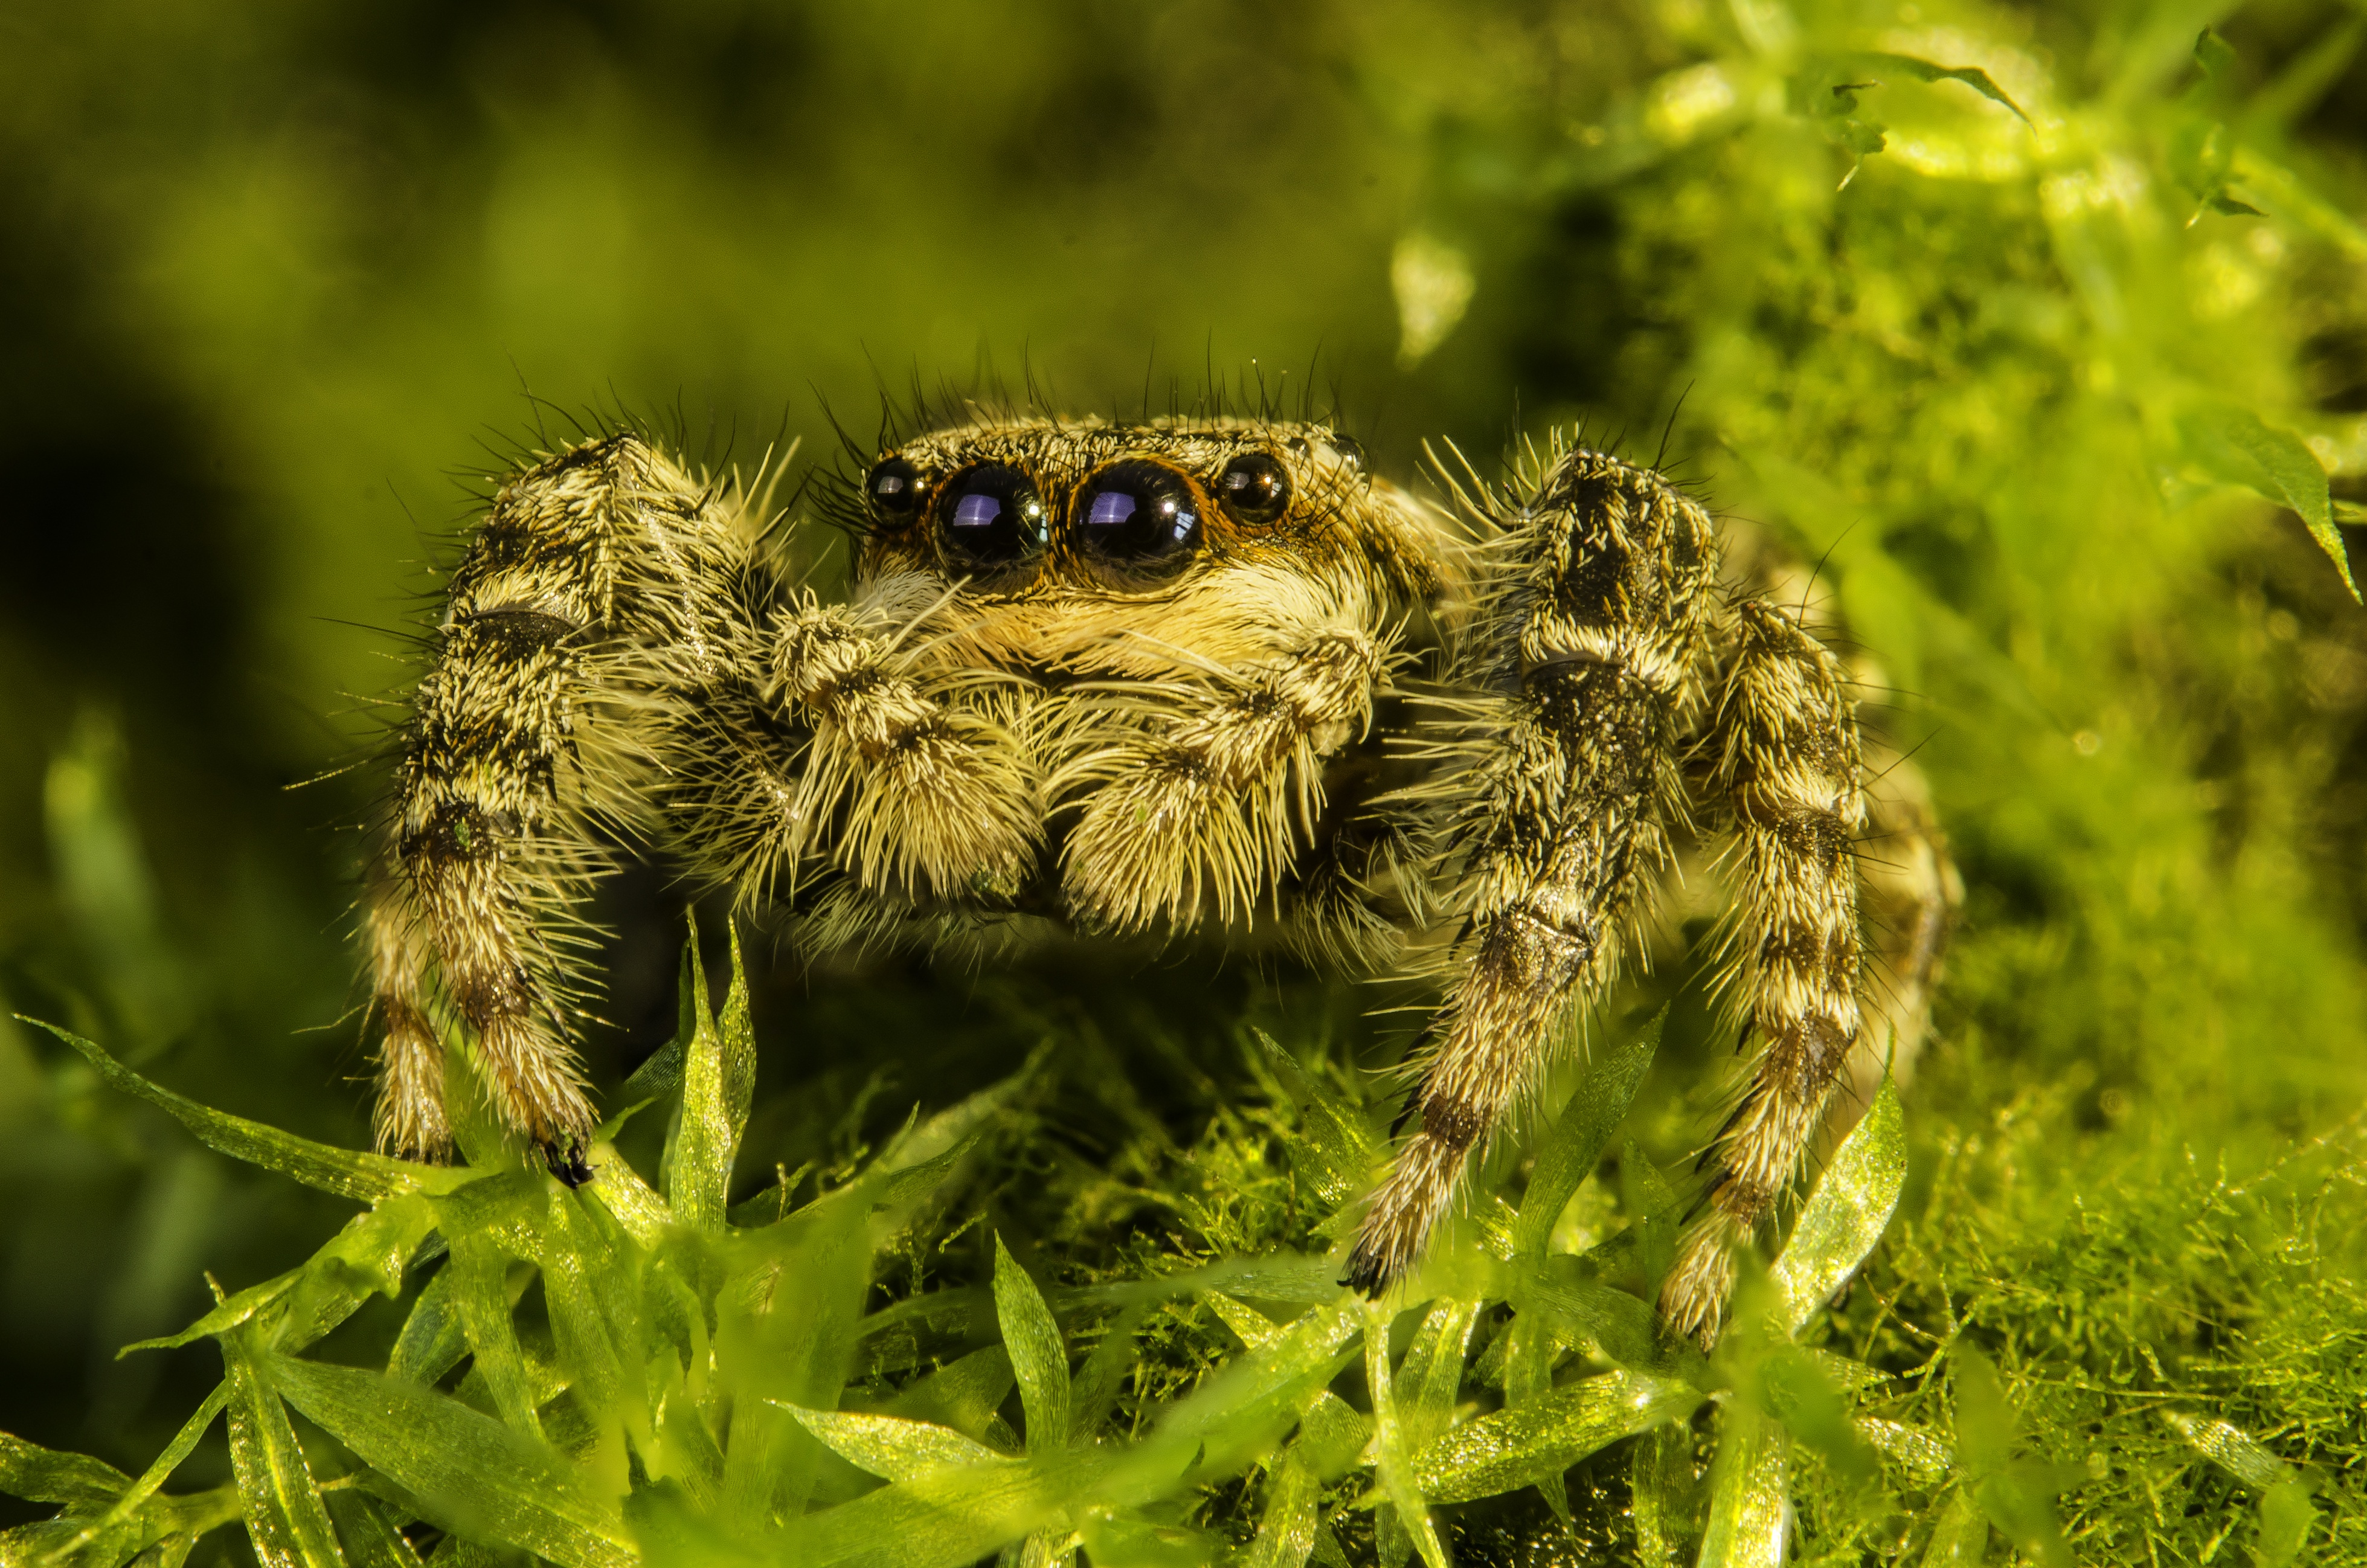 Cute Wallpaper For Mobile Download Free Stock Photo Of Arachnid Close Up Macro